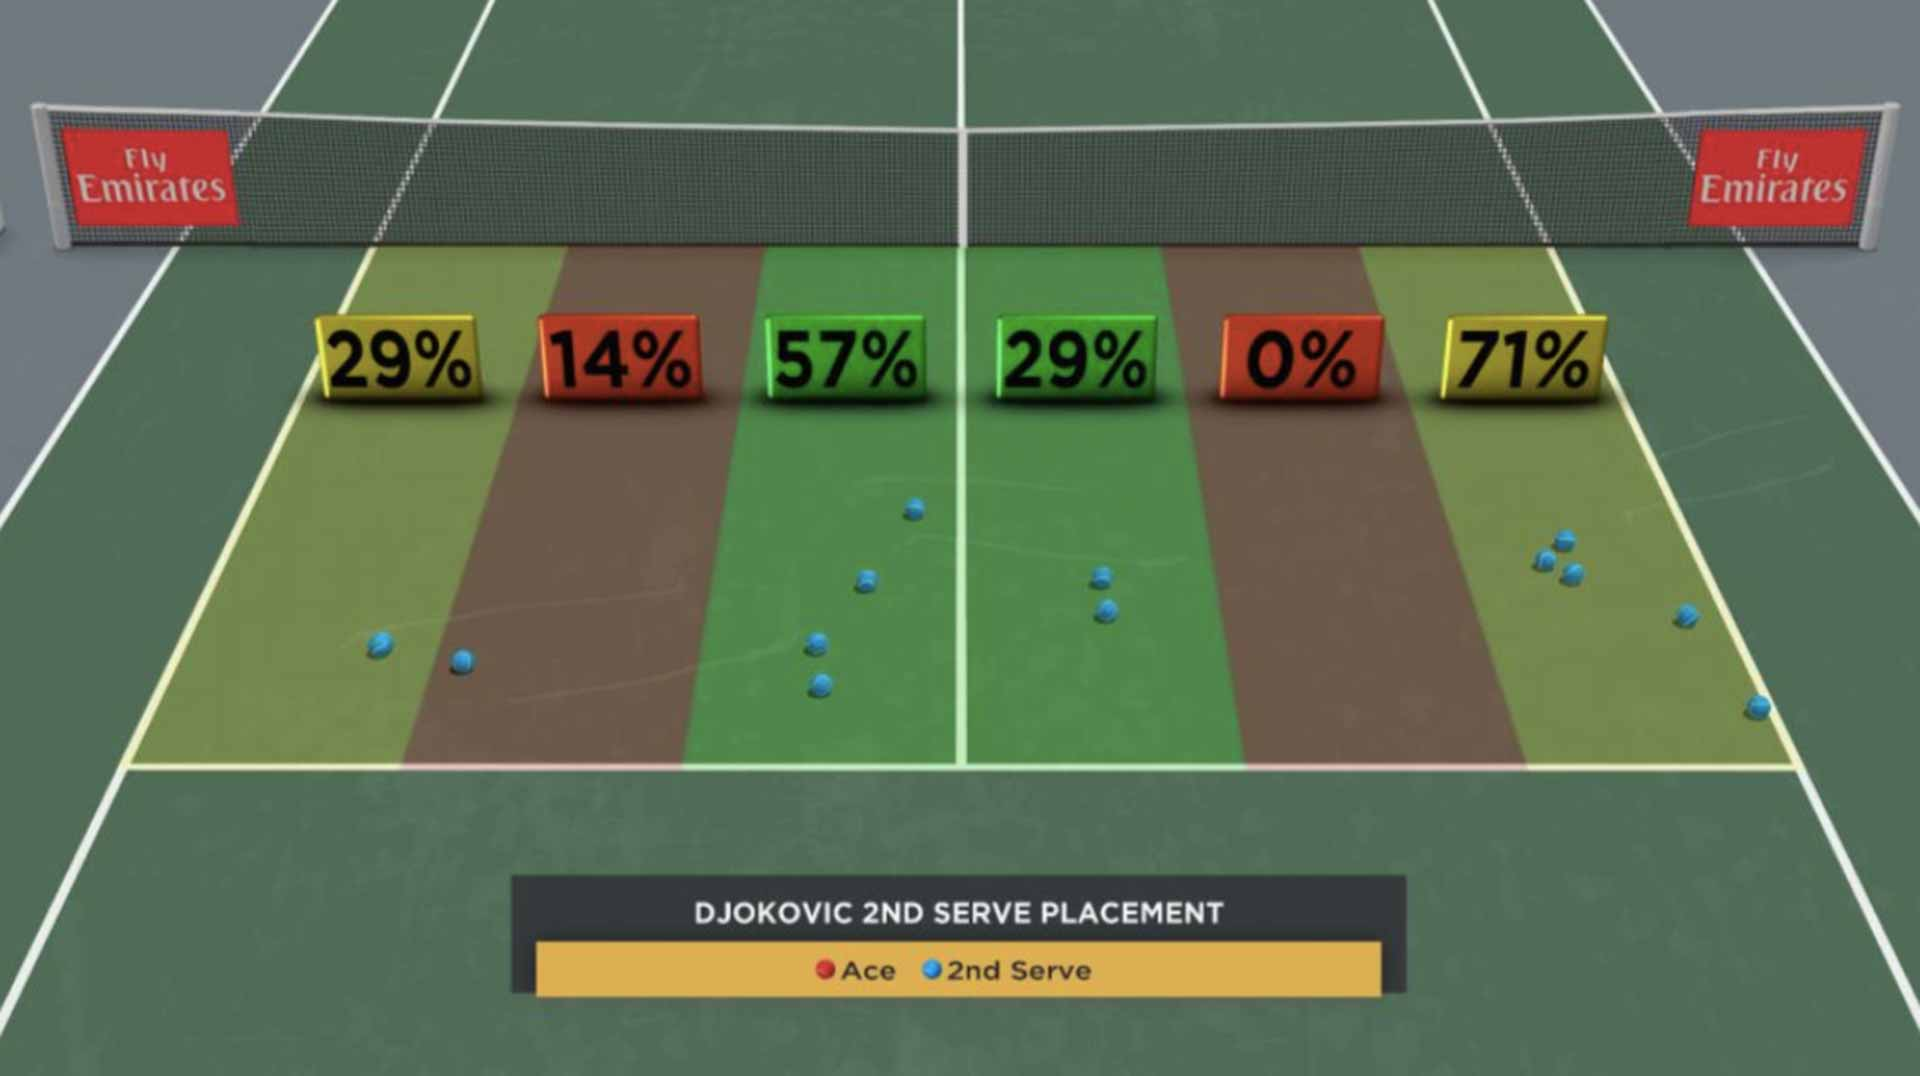 Djokovic Second-Serve Placement